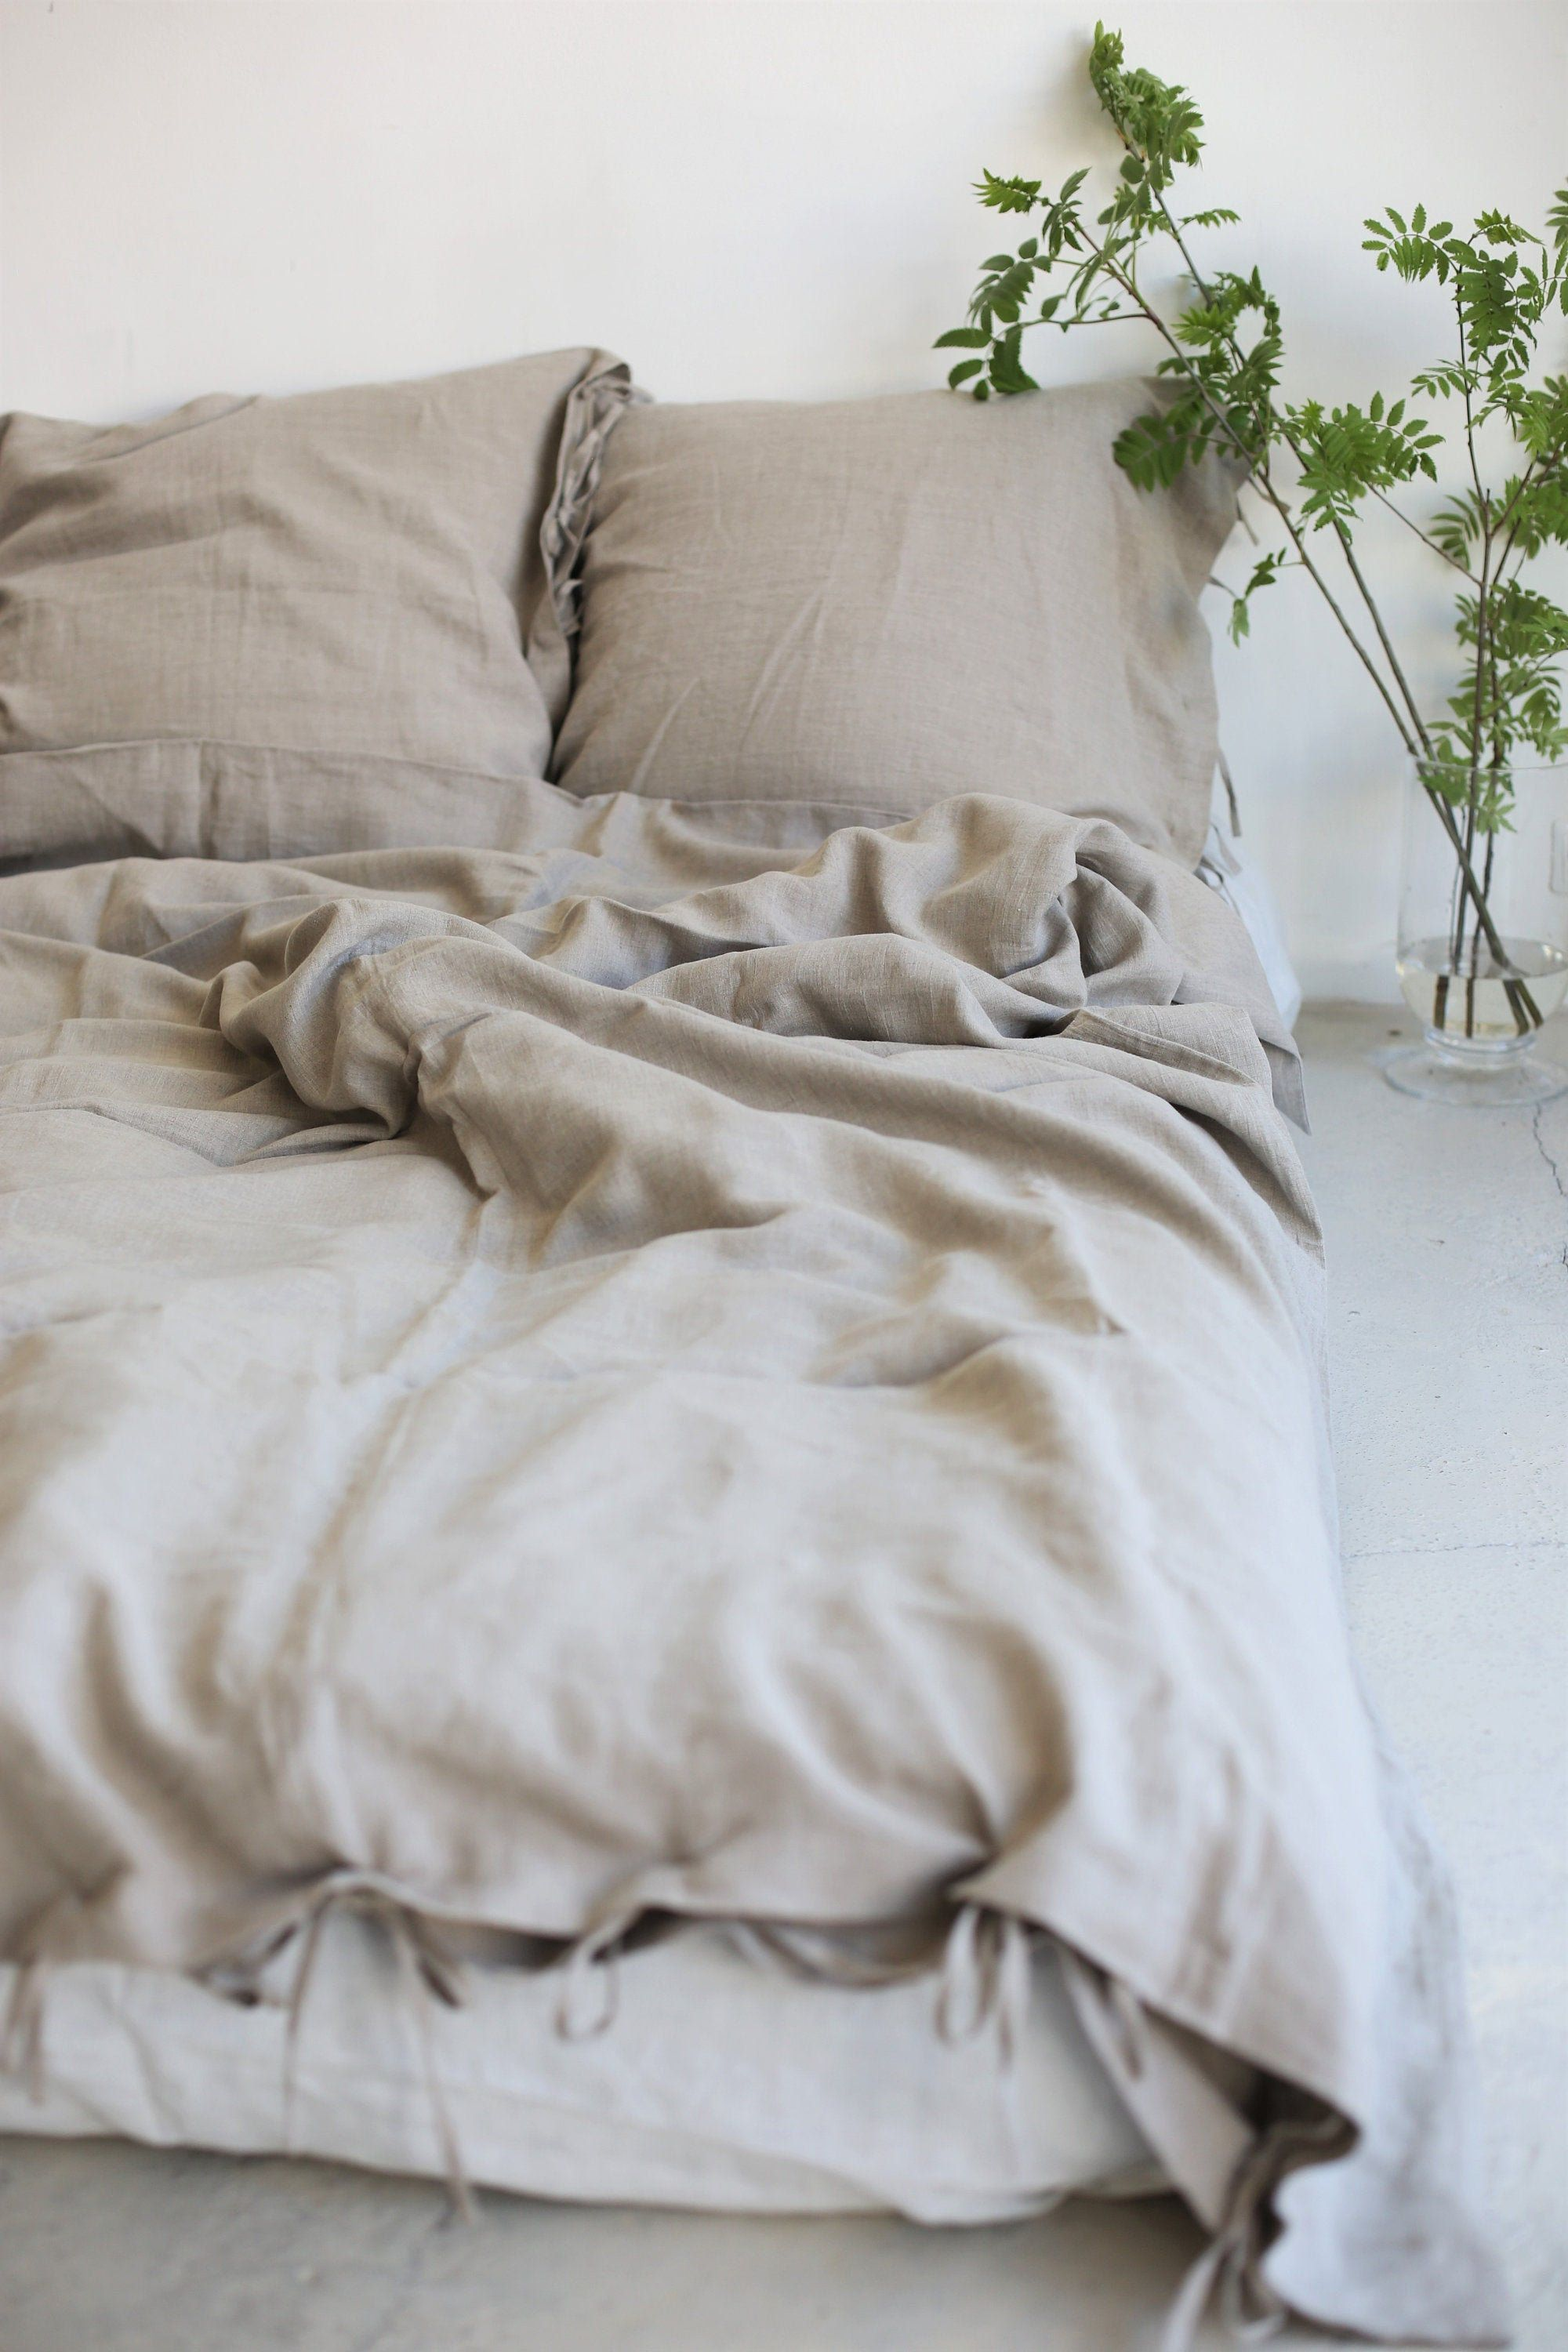 Natural Linen Bedding Linen Pillowcases And Duvet Cover Set Bedding Set Queen King Farmhouse Bedding In 2020 Linen Bedding Natural Linen Pillow Cases Queen Bedding Sets